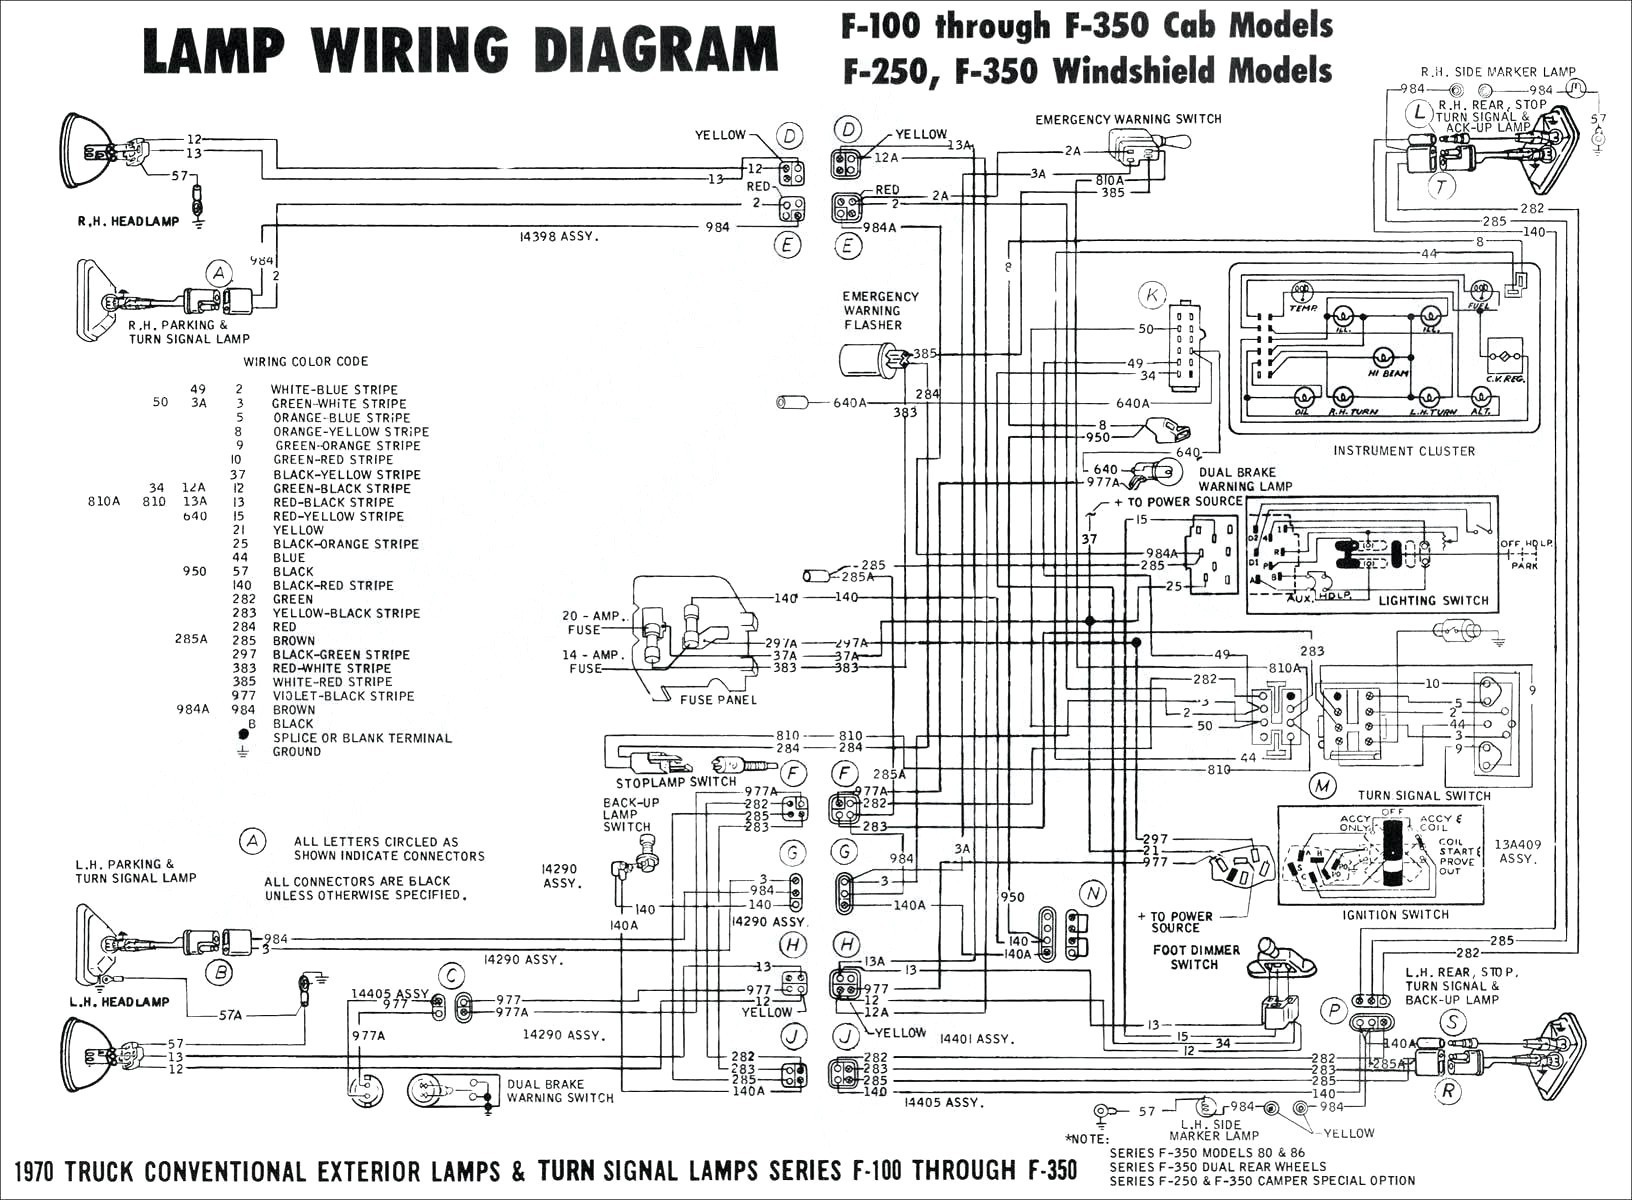 Ford 5000 Tractor Parts Diagram ford 2600 Wiring Diagram Another Blog About Wiring Diagram • Of Ford 5000 Tractor Parts Diagram